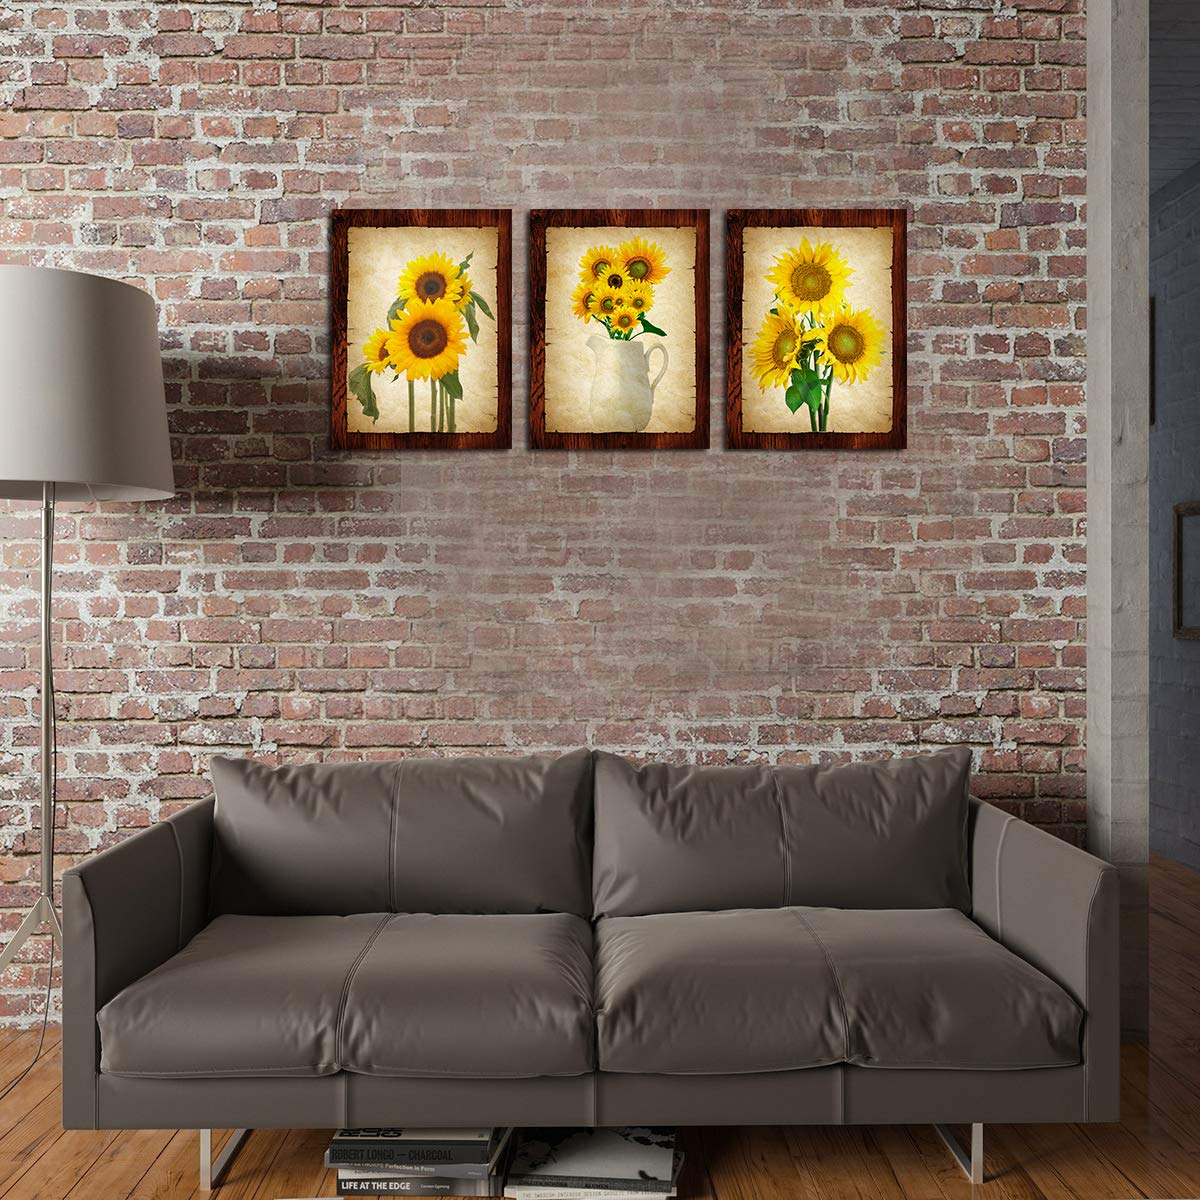 Wall Decor Sunflower Decor Wall Art Prints Black And White Yellow Canvas Painting Flower Plant Daisy Floral Pictures 3 Panels Unframed Bedroom Living Room Bathroom Kitchen Decoration Home Office Modern Artwork Home